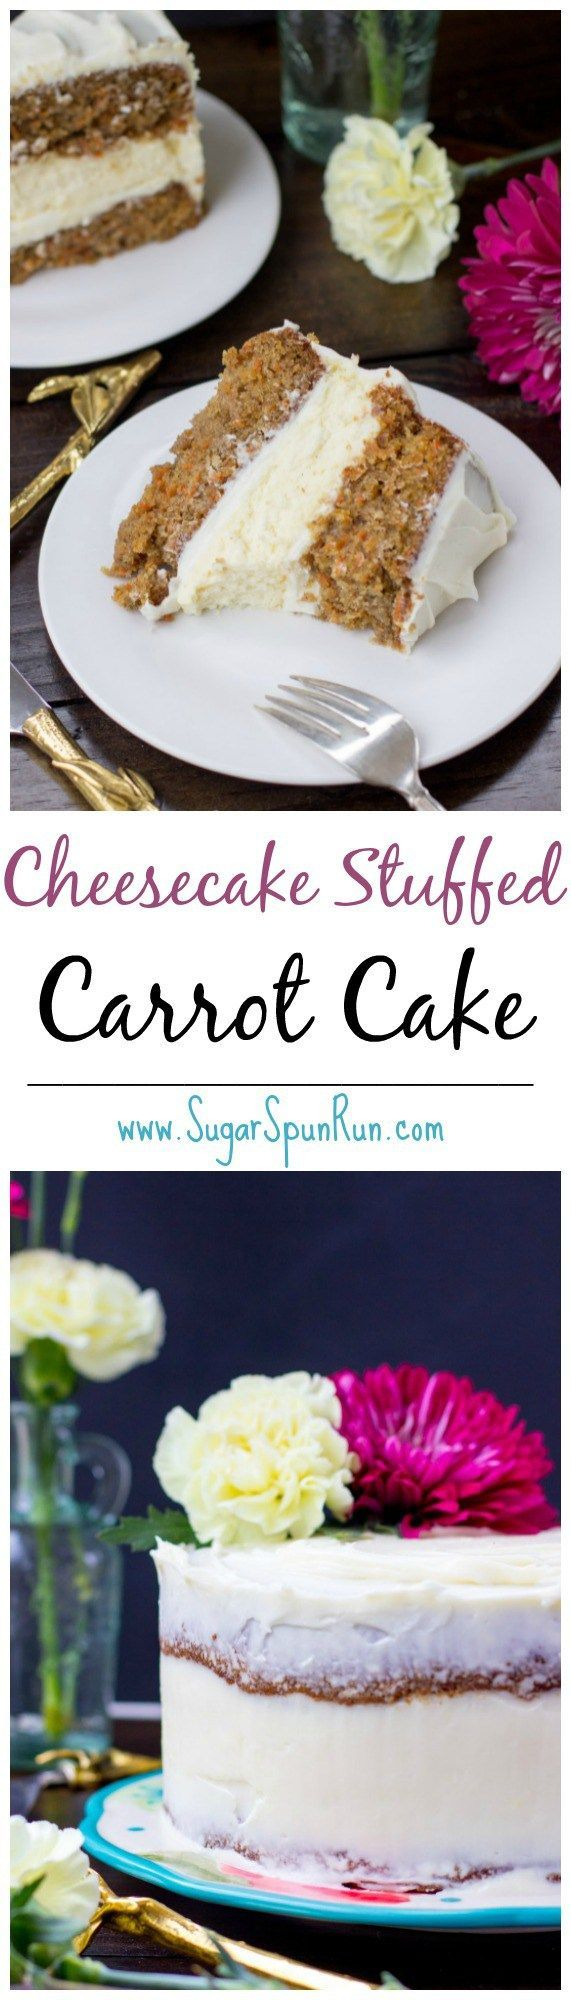 Cheesecake Stuffed Carrot Cake! This carrot cake is so moist and perfect, and the cheesecake layer is amazing!